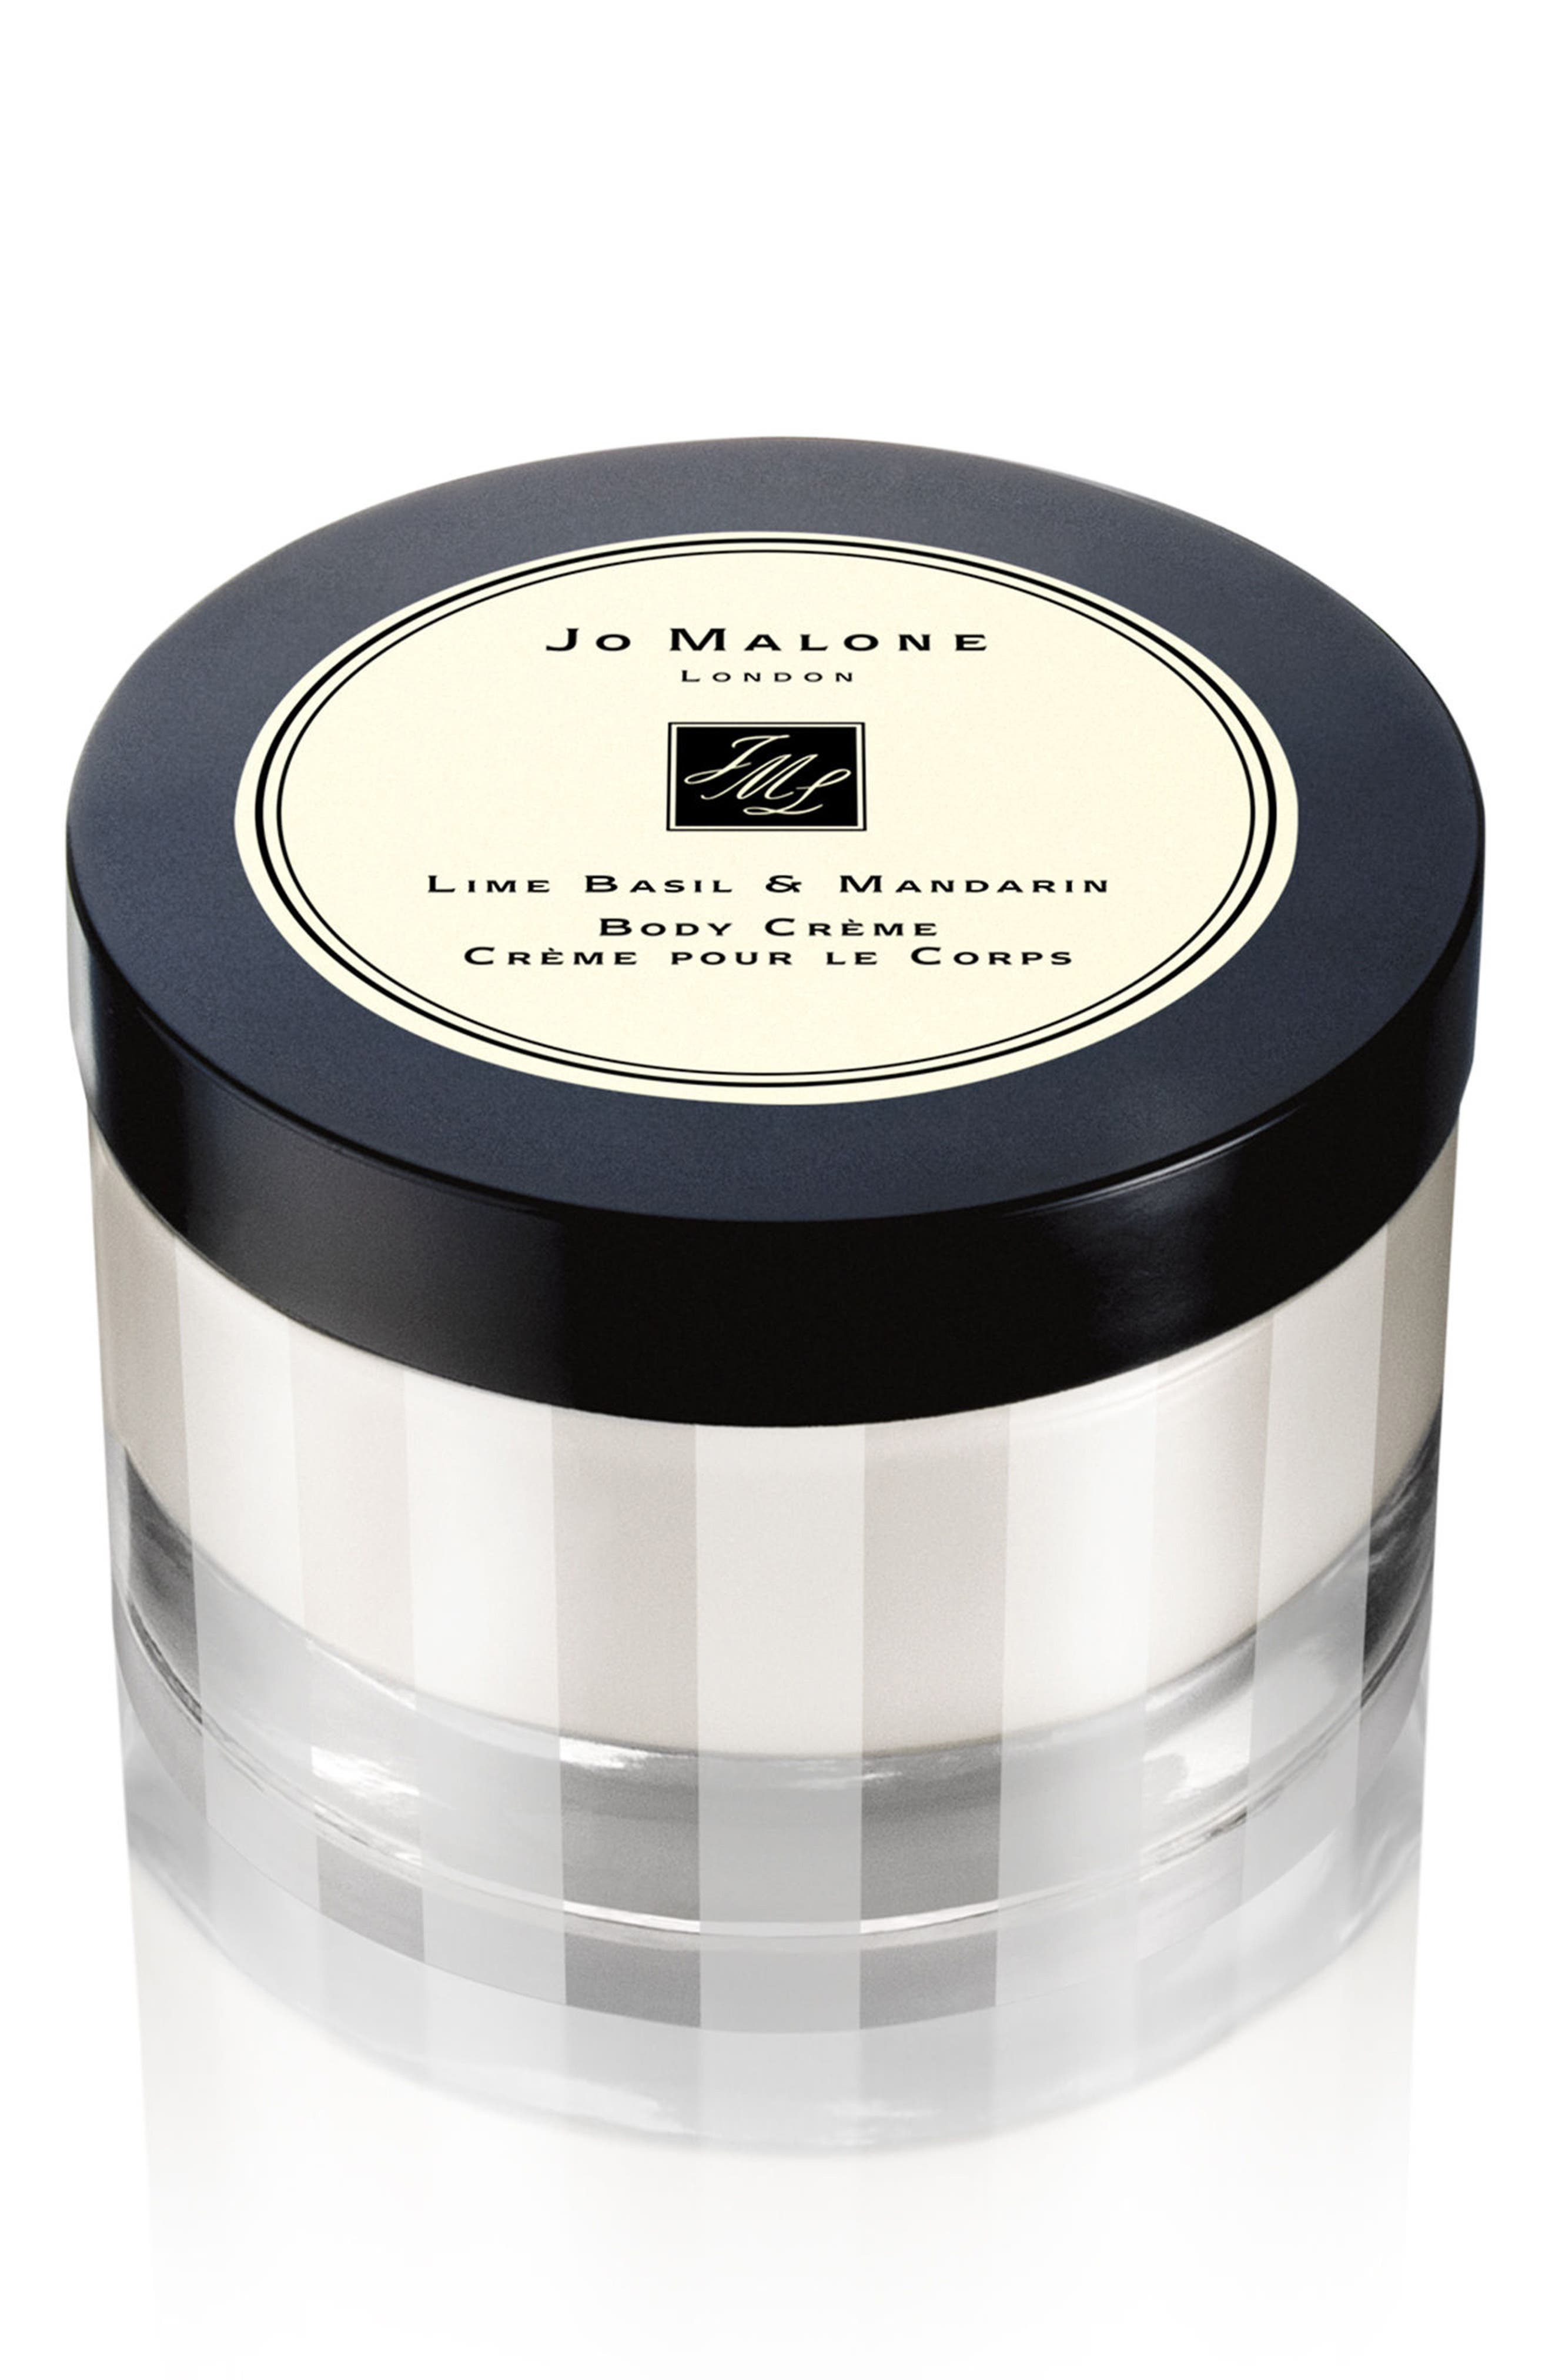 Jo Malone London™ 'Lime Basil & Mandarin' Body Crème